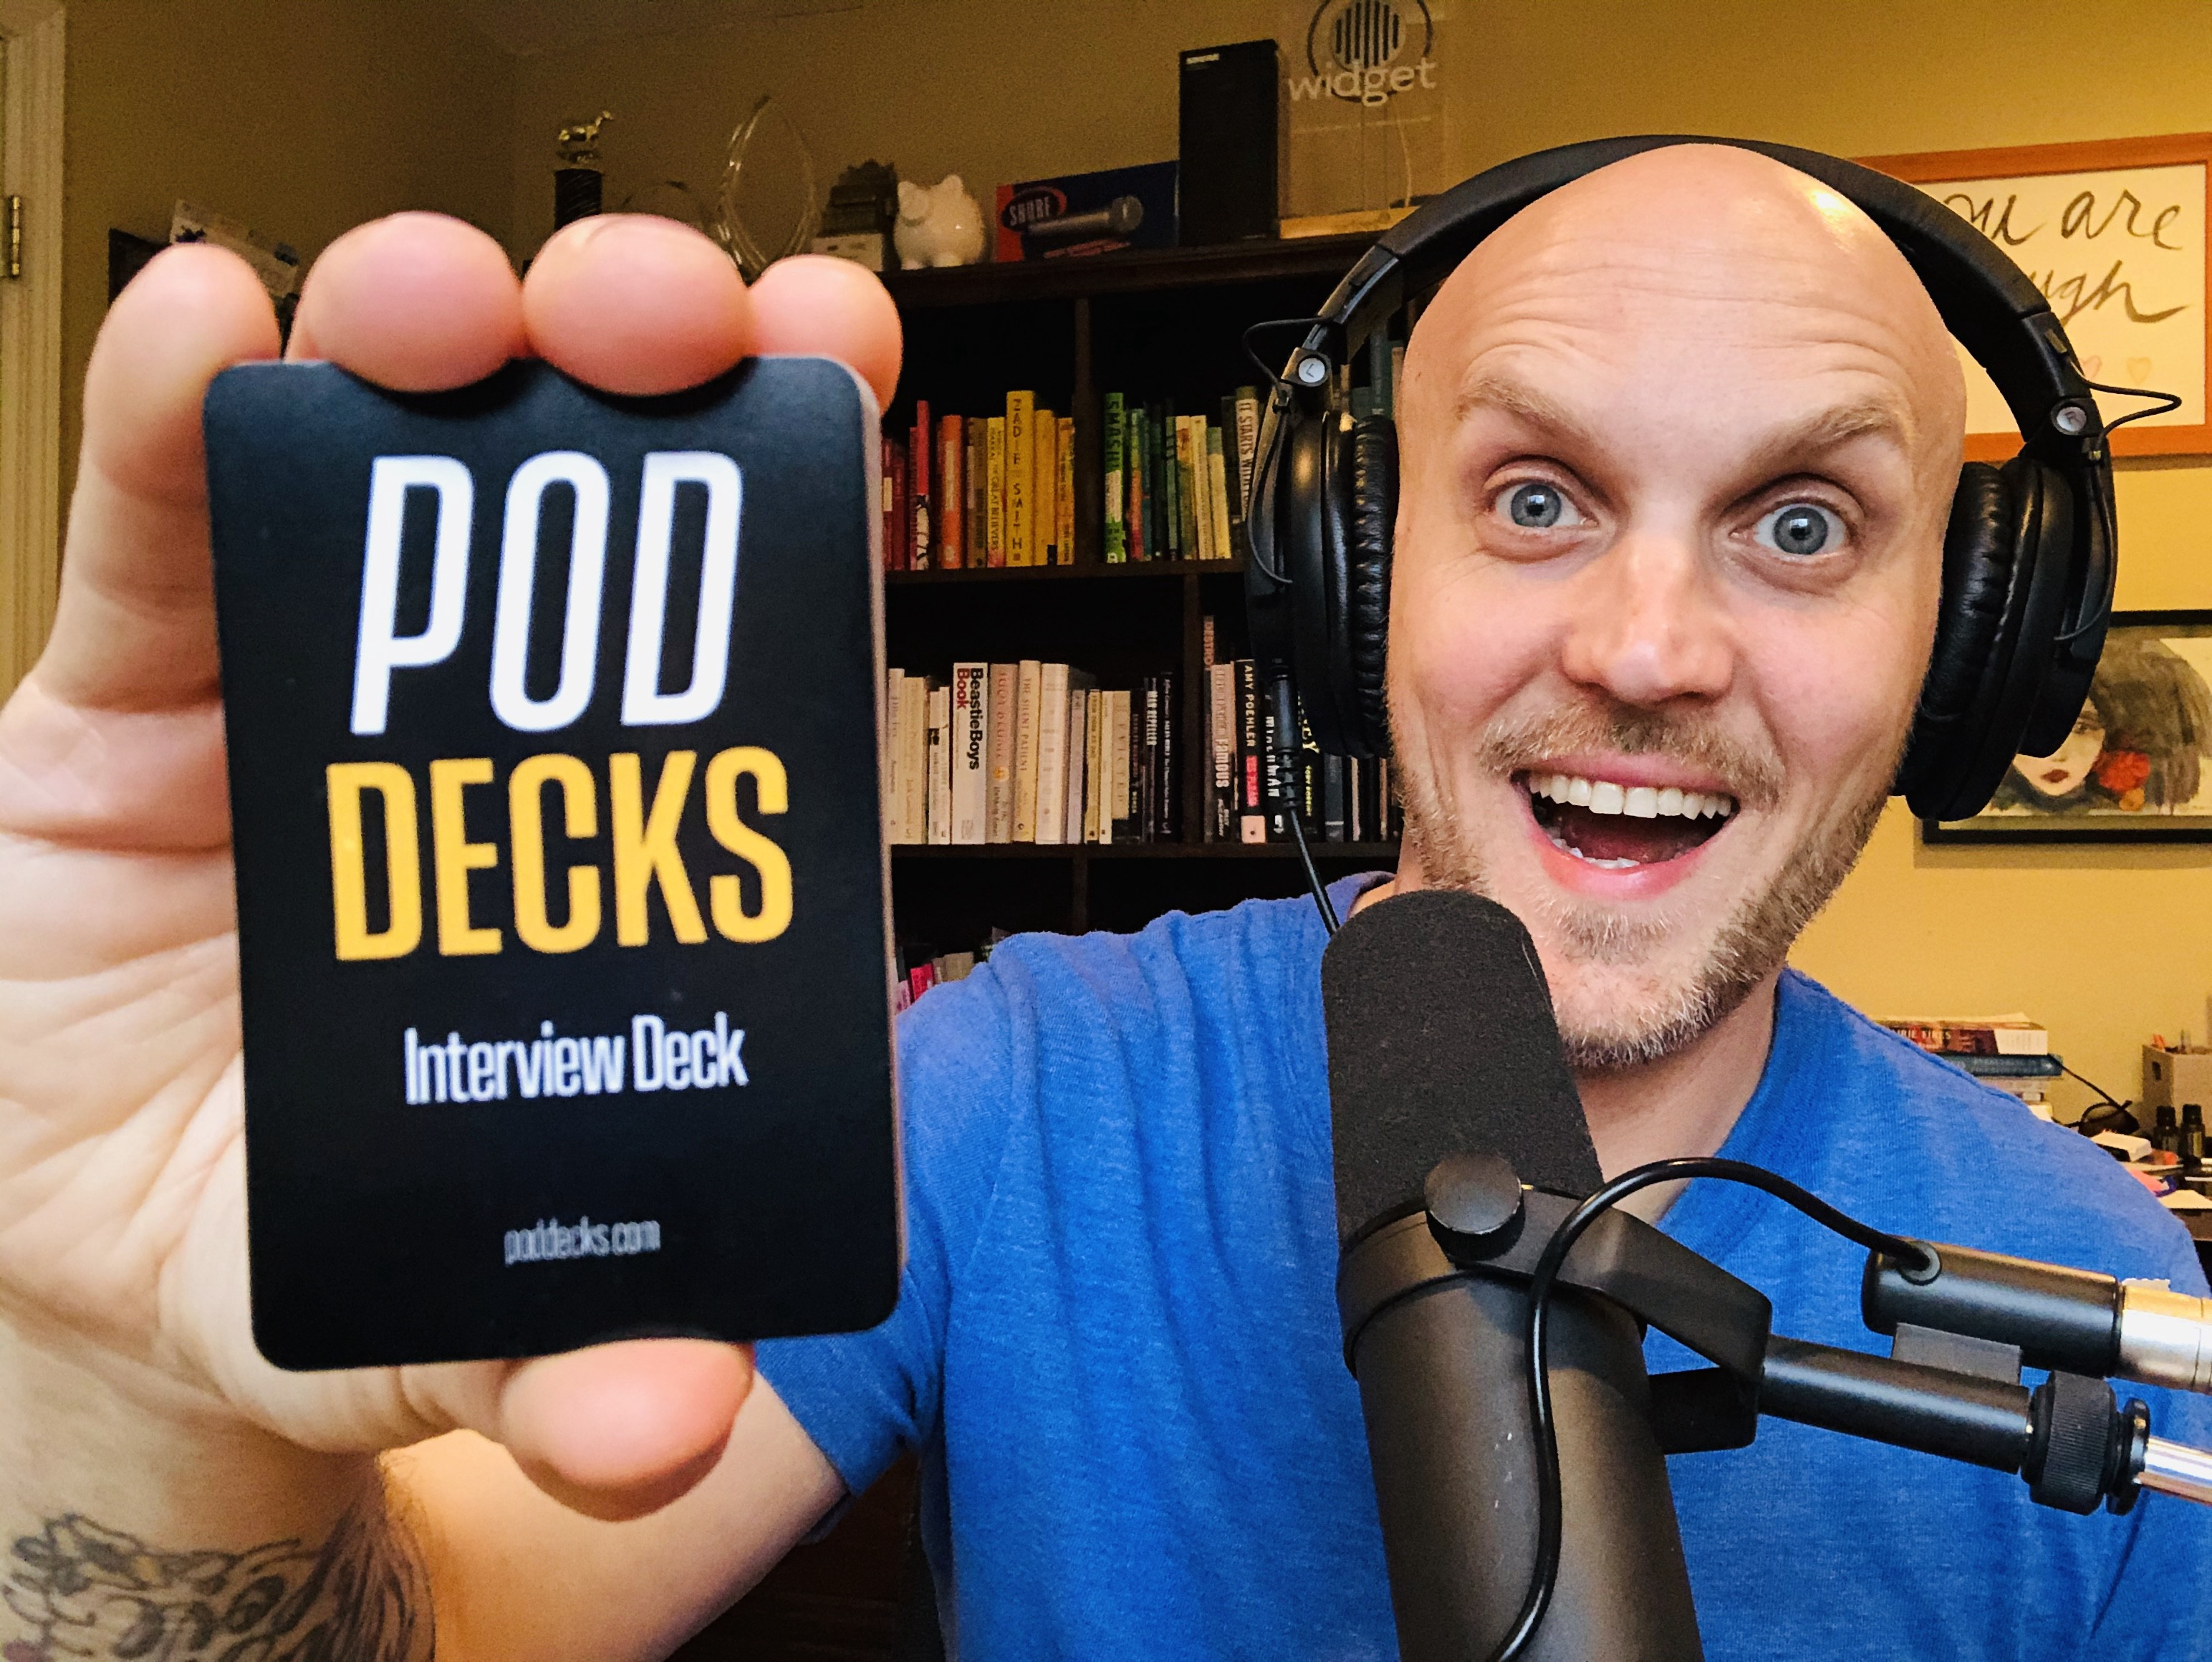 Podcast host, podcast interview, podcasting, how to